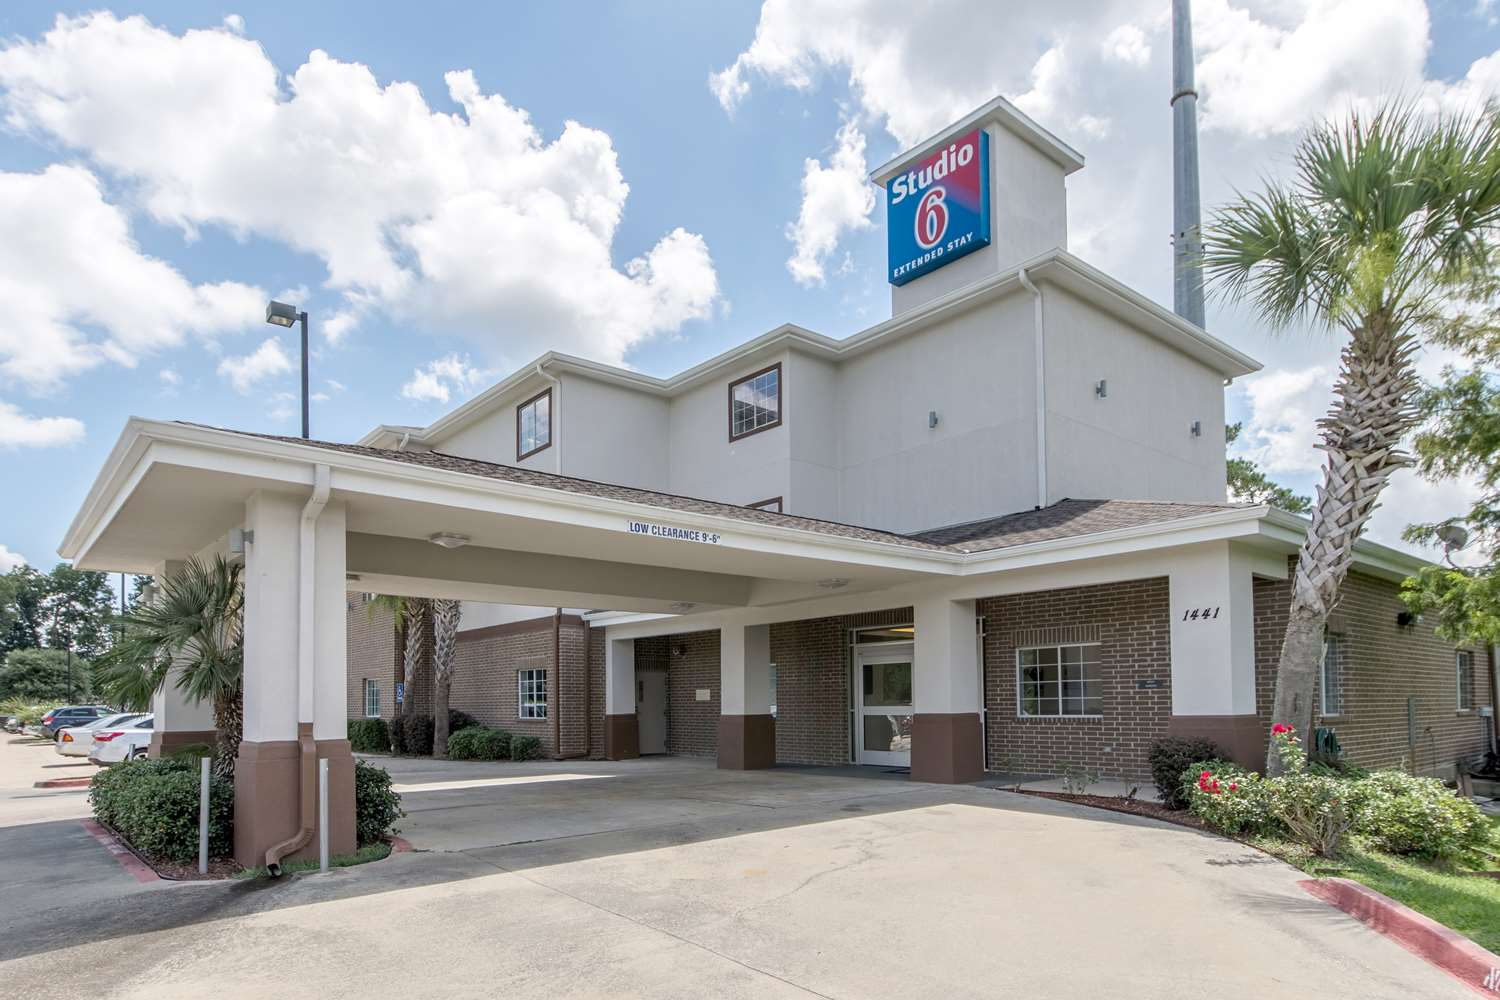 Exterior view - Studio 6 Extended Stay Hotel Lafayette